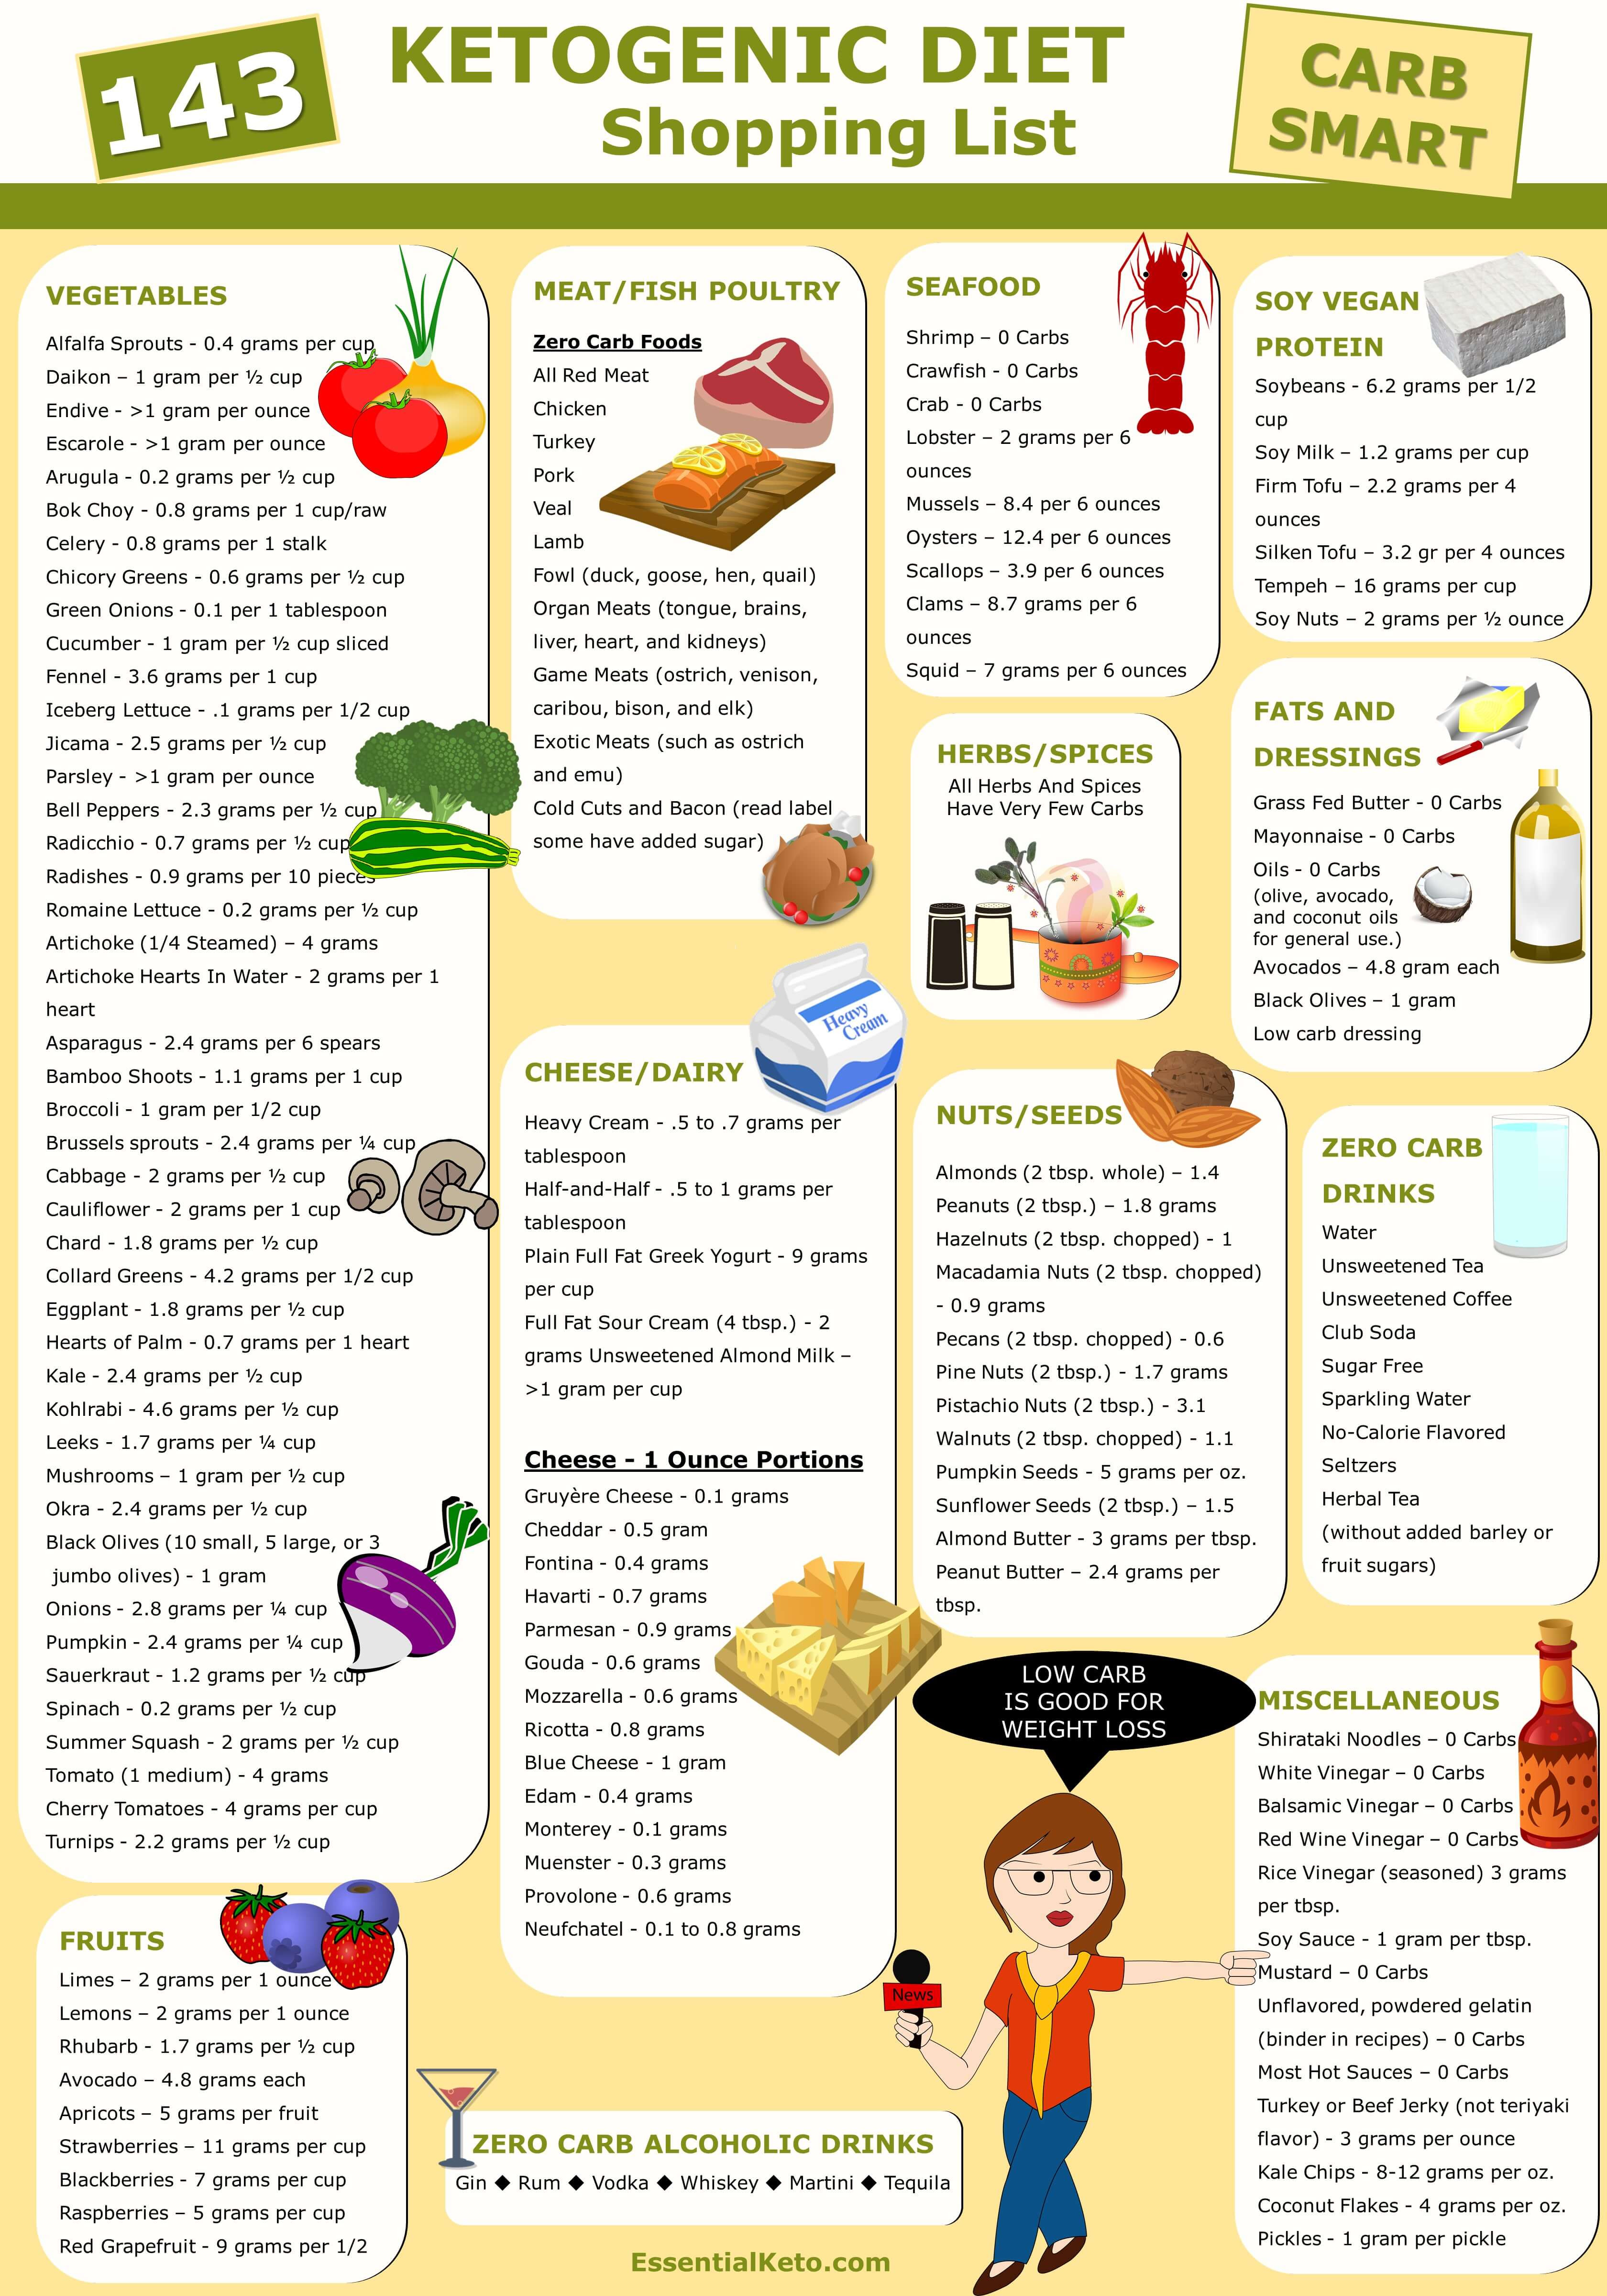 Keto Diet Products  Ketogenic Diet Foods Shopping List